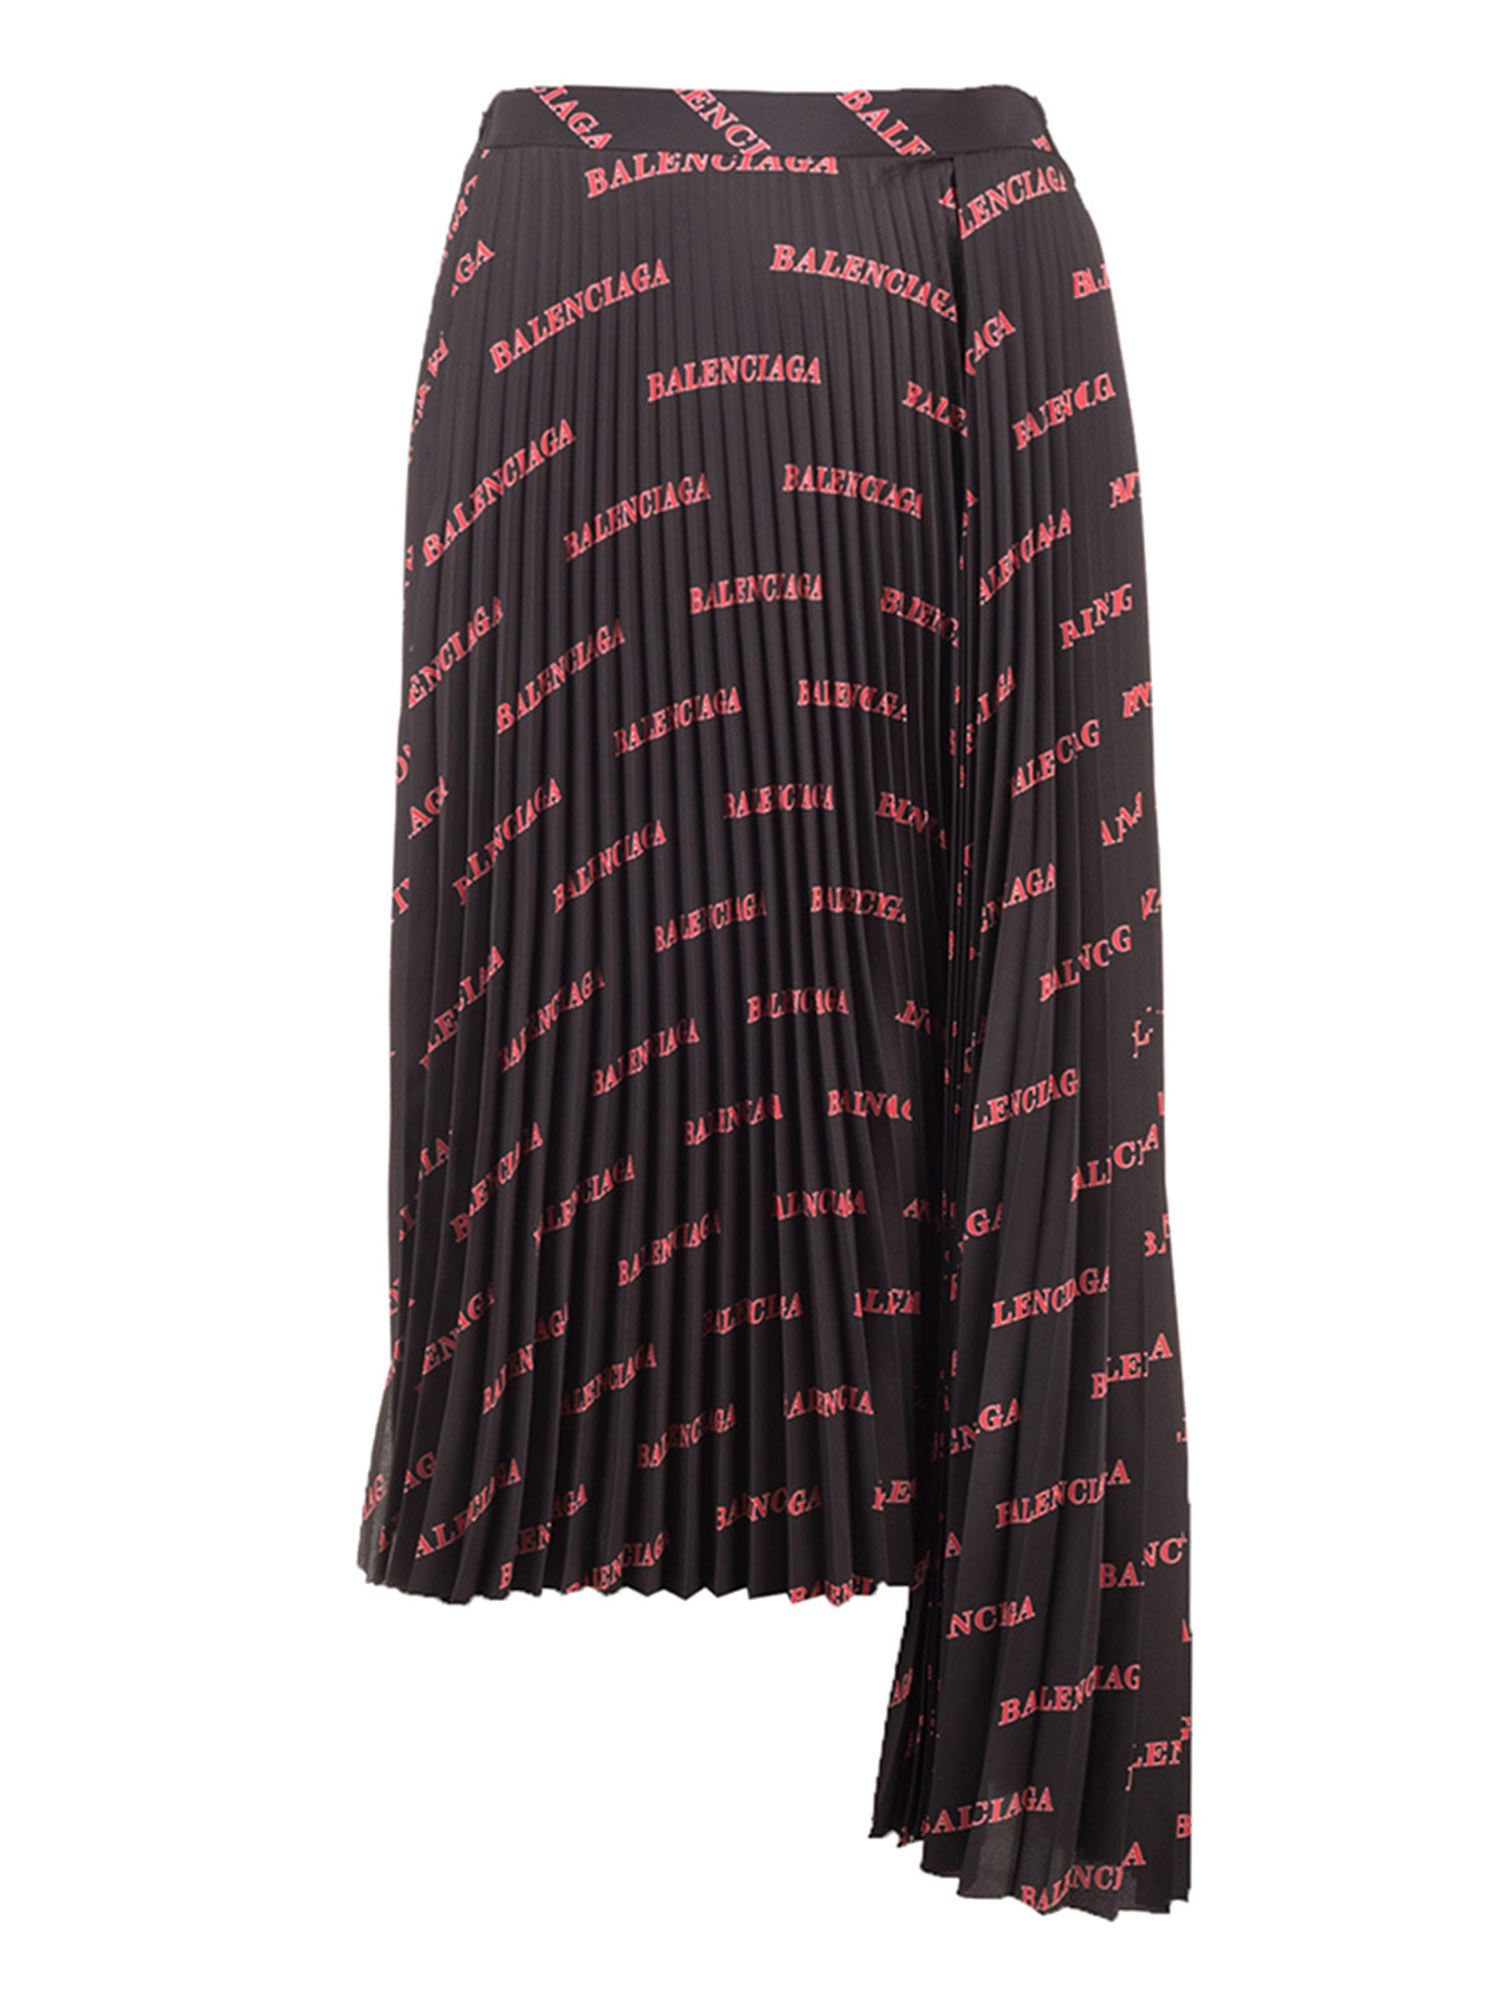 Balenciaga Skirts ALLOVER SPORTY LOGO SKIRT IN BLACK AND RED